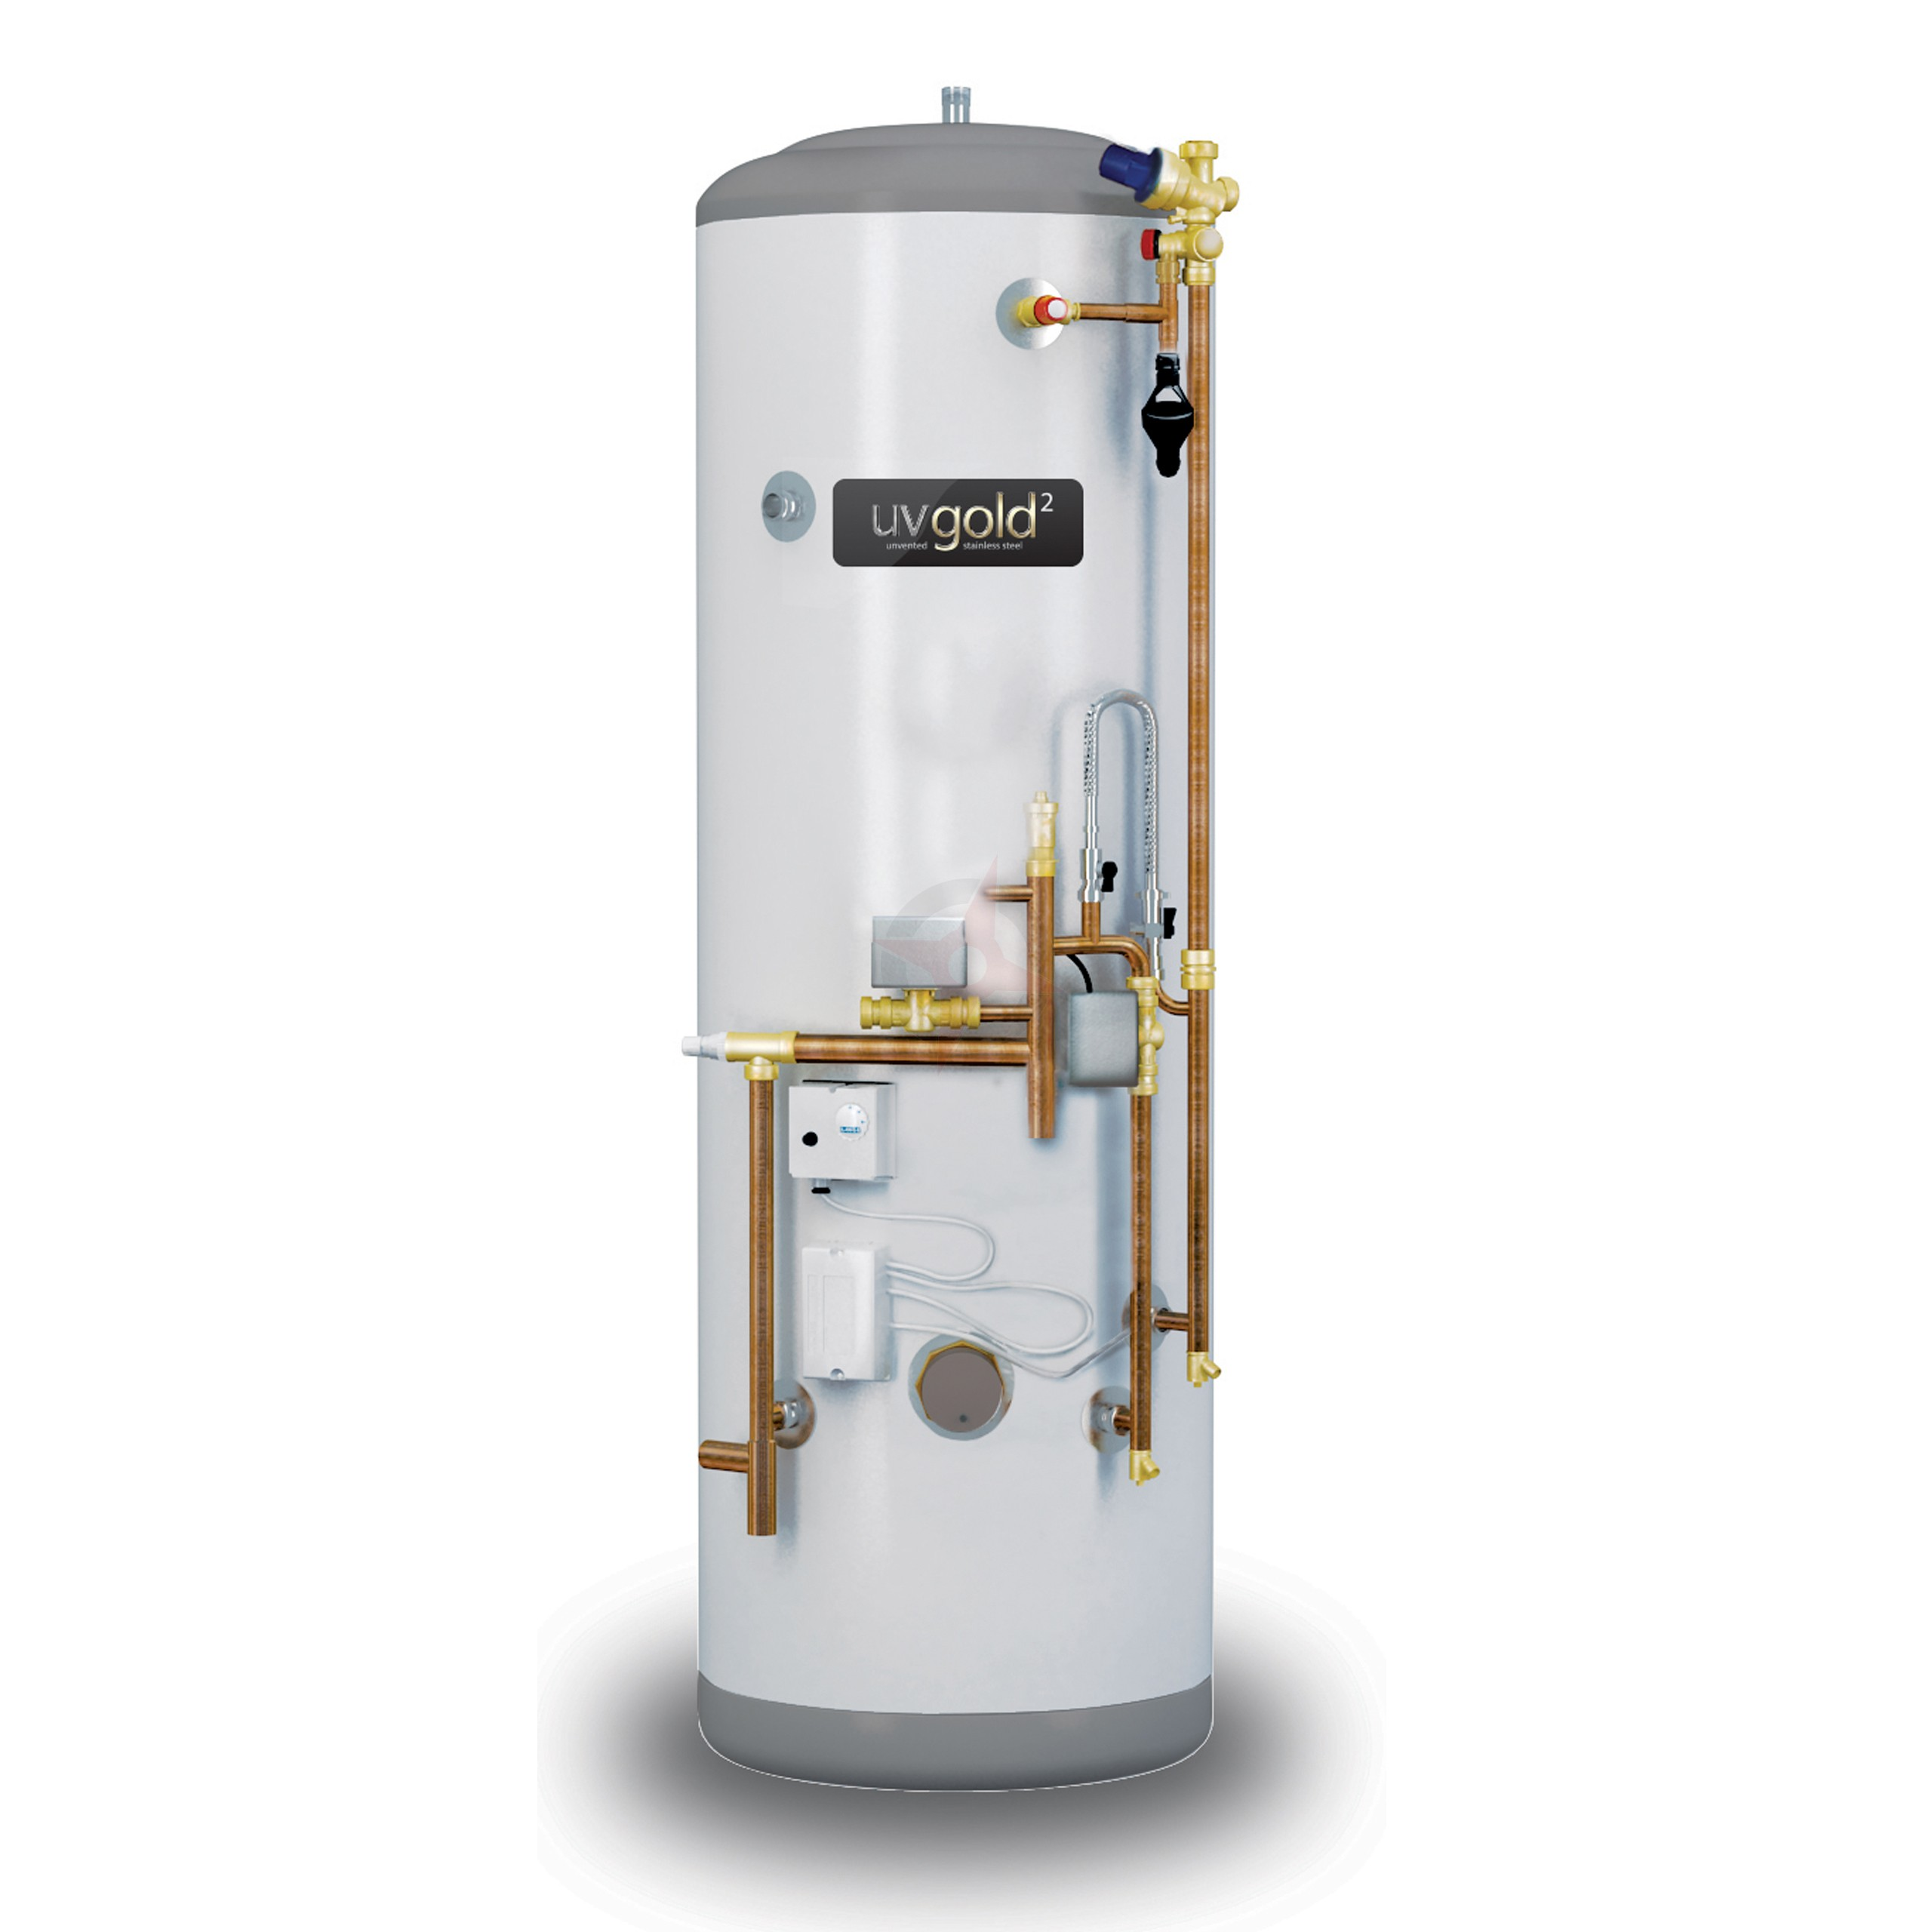 uvgold2 210L System Fit Pre Plumbed Unvented Hot Water Storage ...